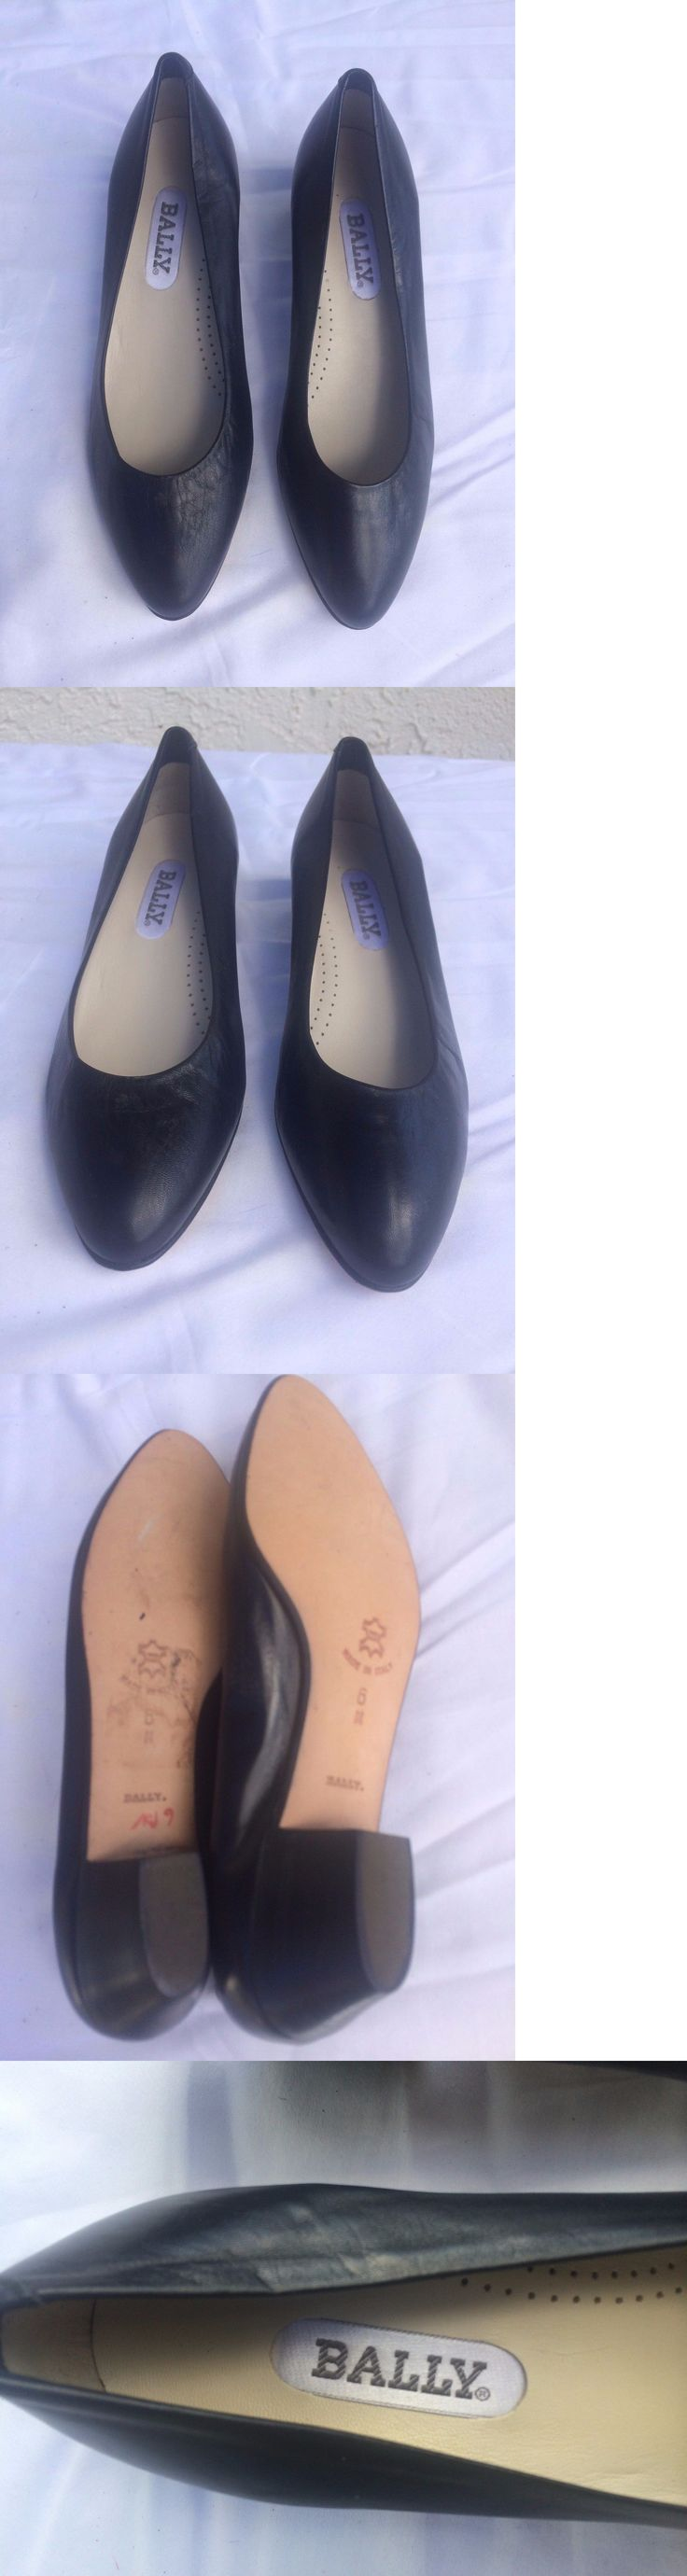 Women Shoes: Bally Black Leather Shoes Ballet Pumps New Womens Sz 6M BUY IT NOW ONLY: $39.99